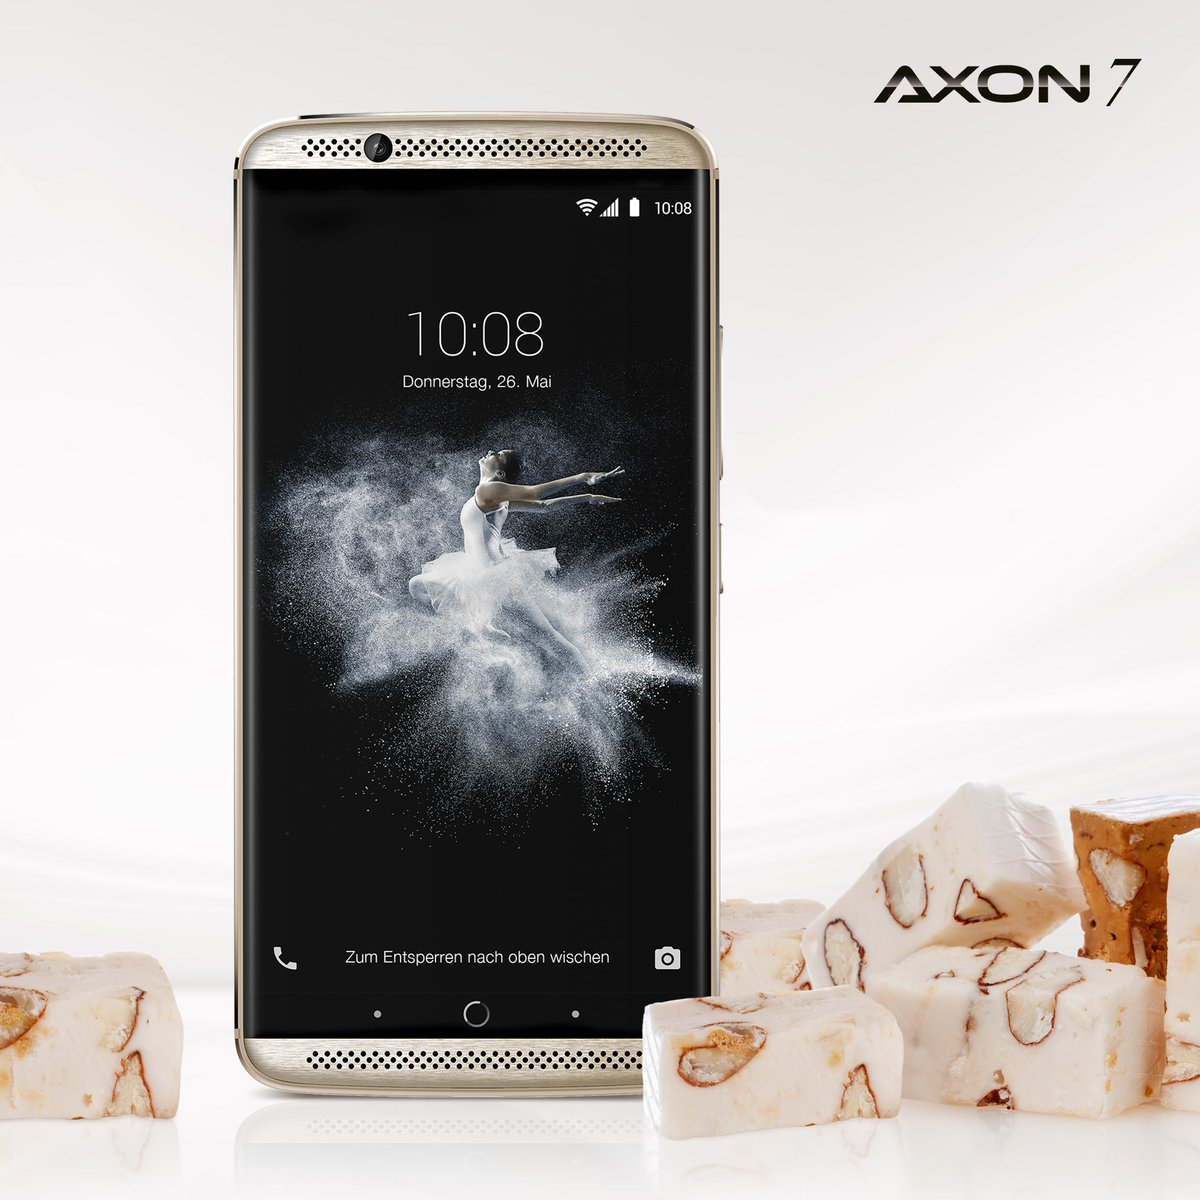 quality zte axon nougat phone can also